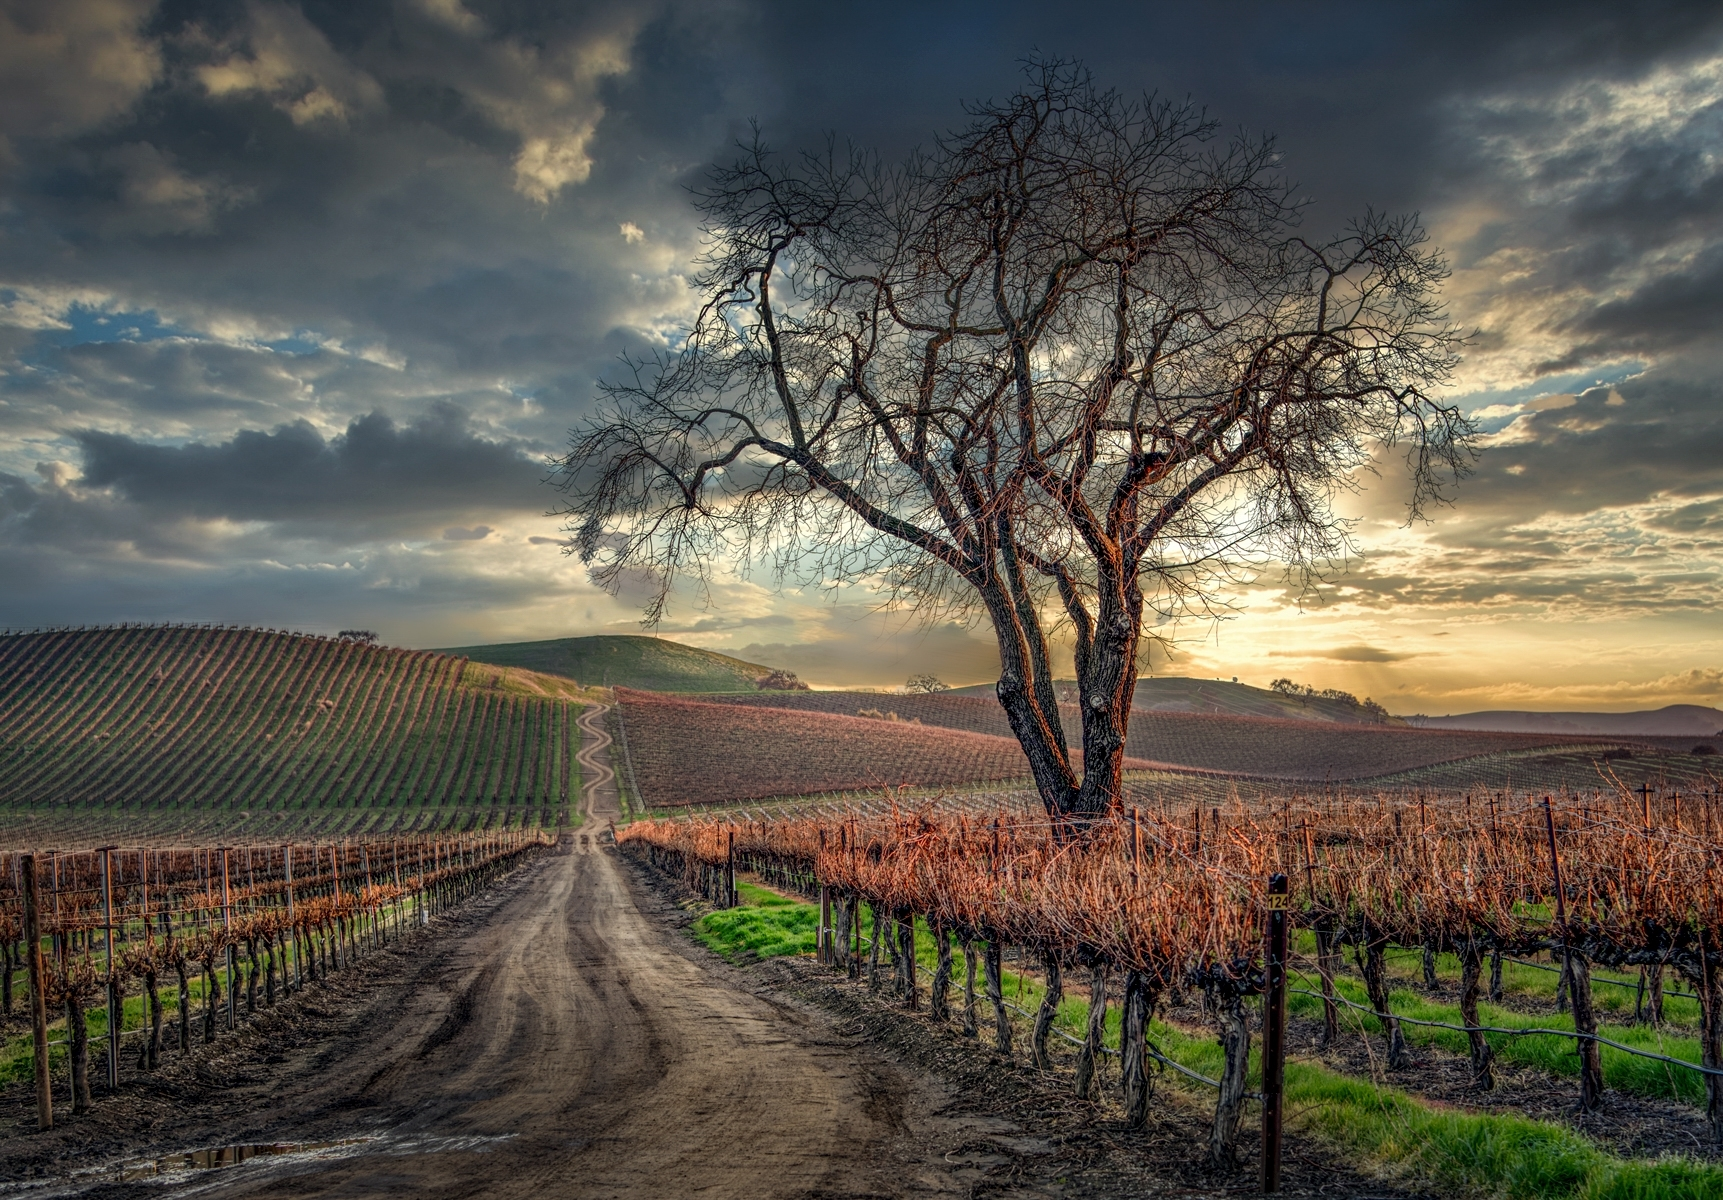 Sunset-in-the-Marina-Ave-Vineyard-Livermore-CA-PA-1-Place-by-Barry-Zupan-LV